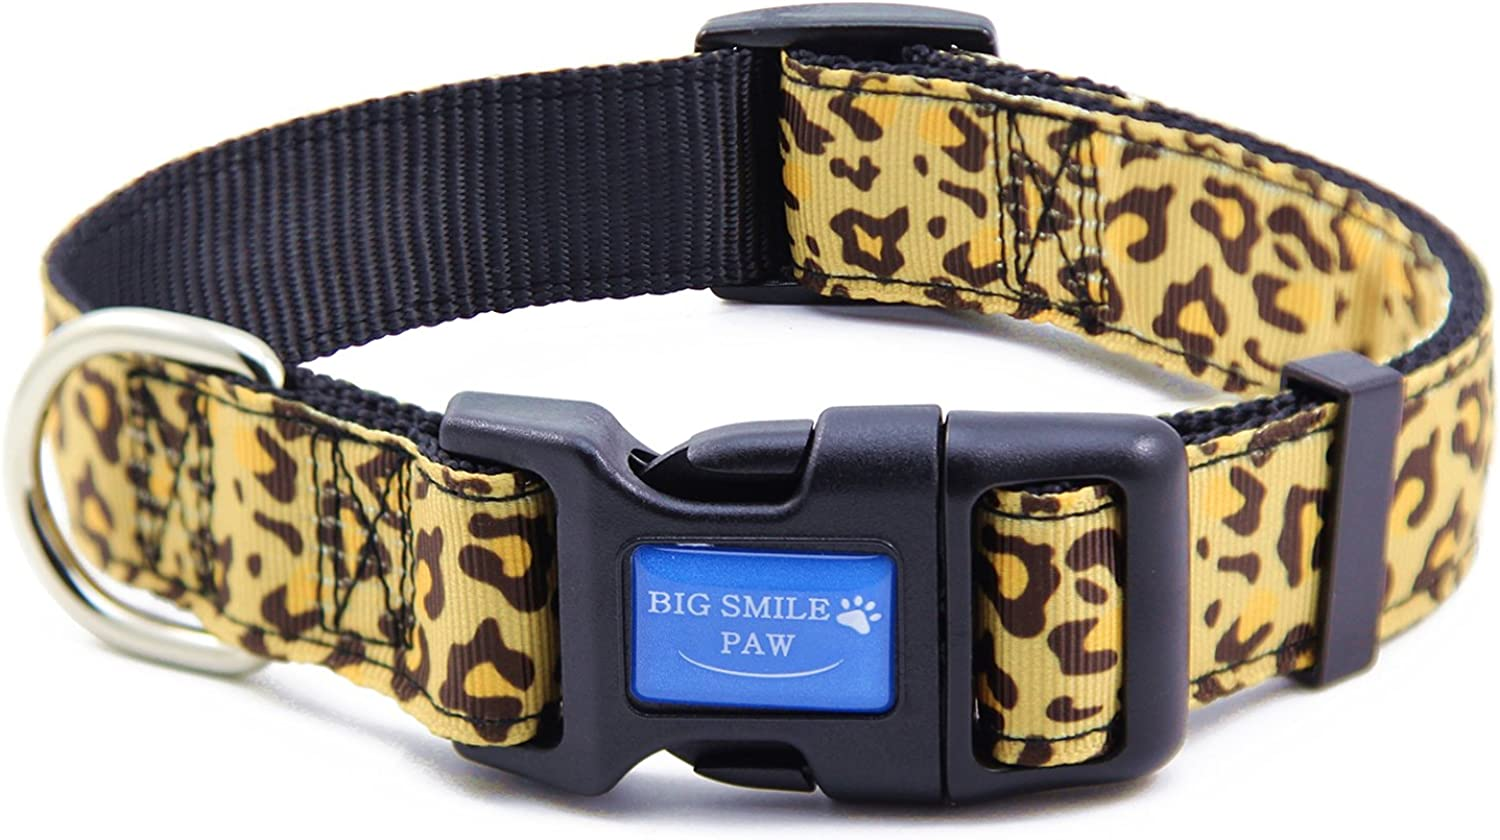 BIG SMILE PAW Nylon Dog Collar Adjustable,Leopard Print Dog Collar (M)